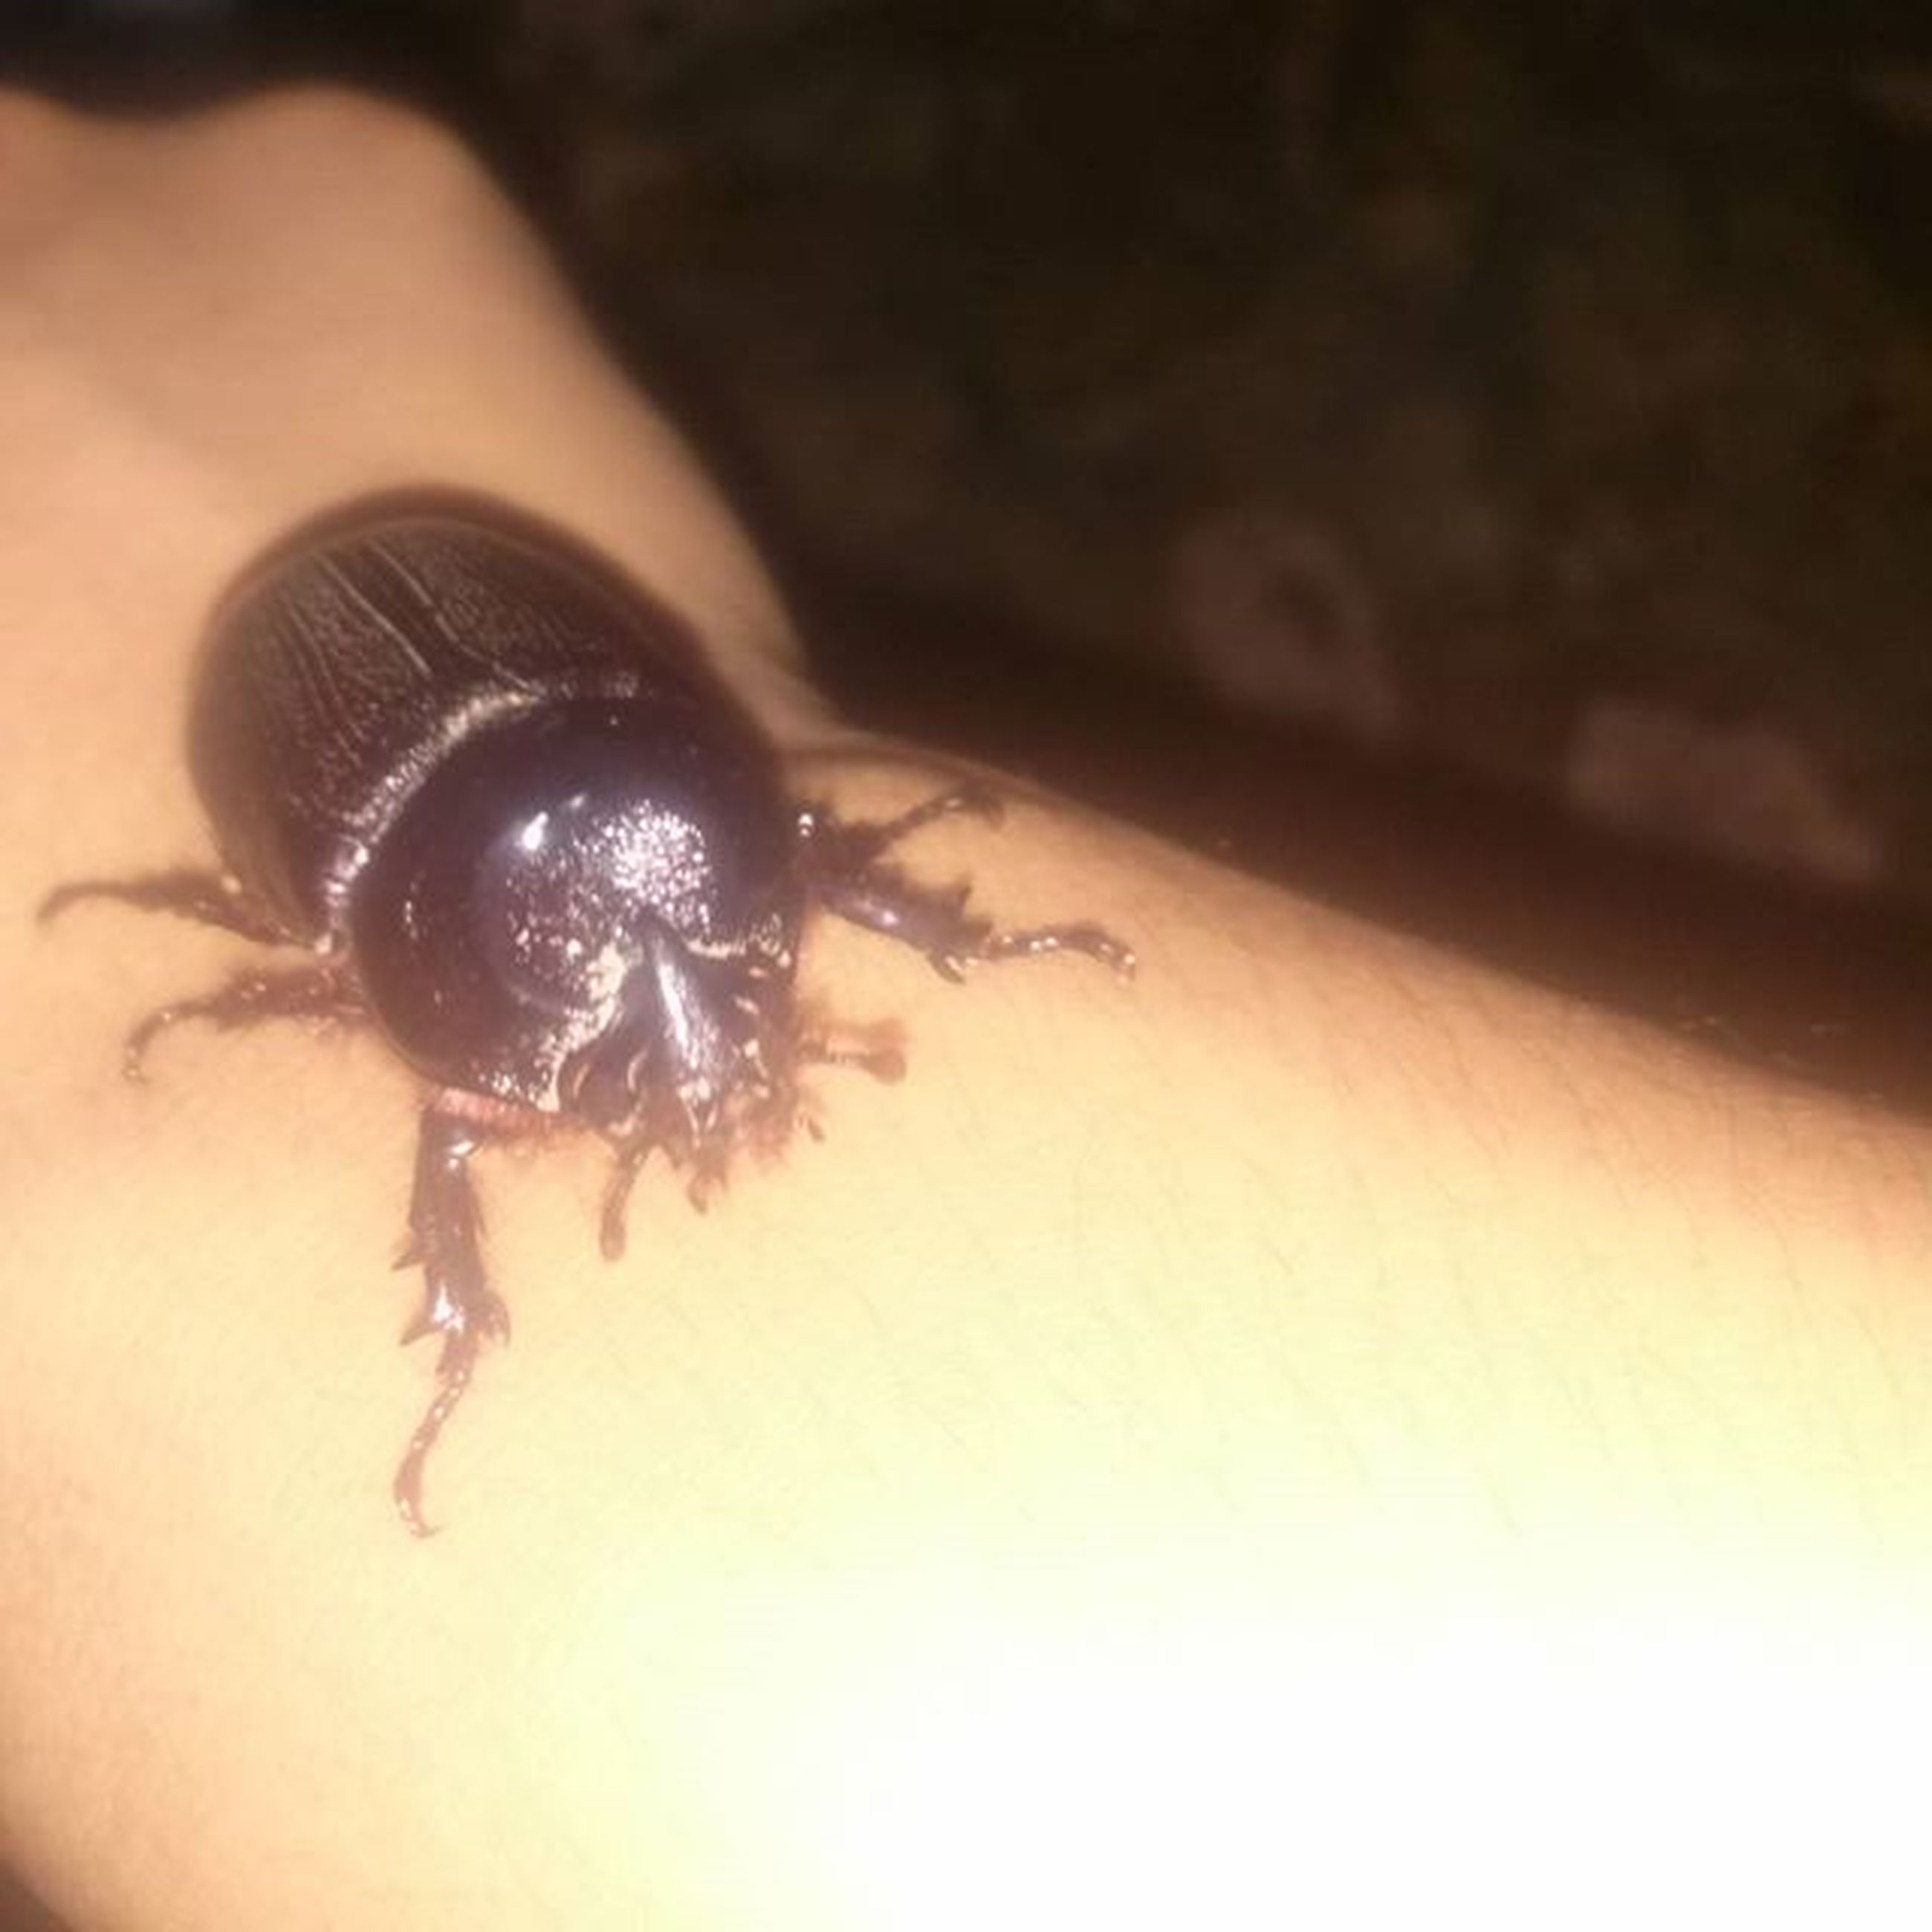 insect, indoors, one animal, close-up, animal themes, person, unrecognizable person, part of, wall - building feature, selective focus, animals in the wild, high angle view, holding, human finger, wildlife, black color, ring